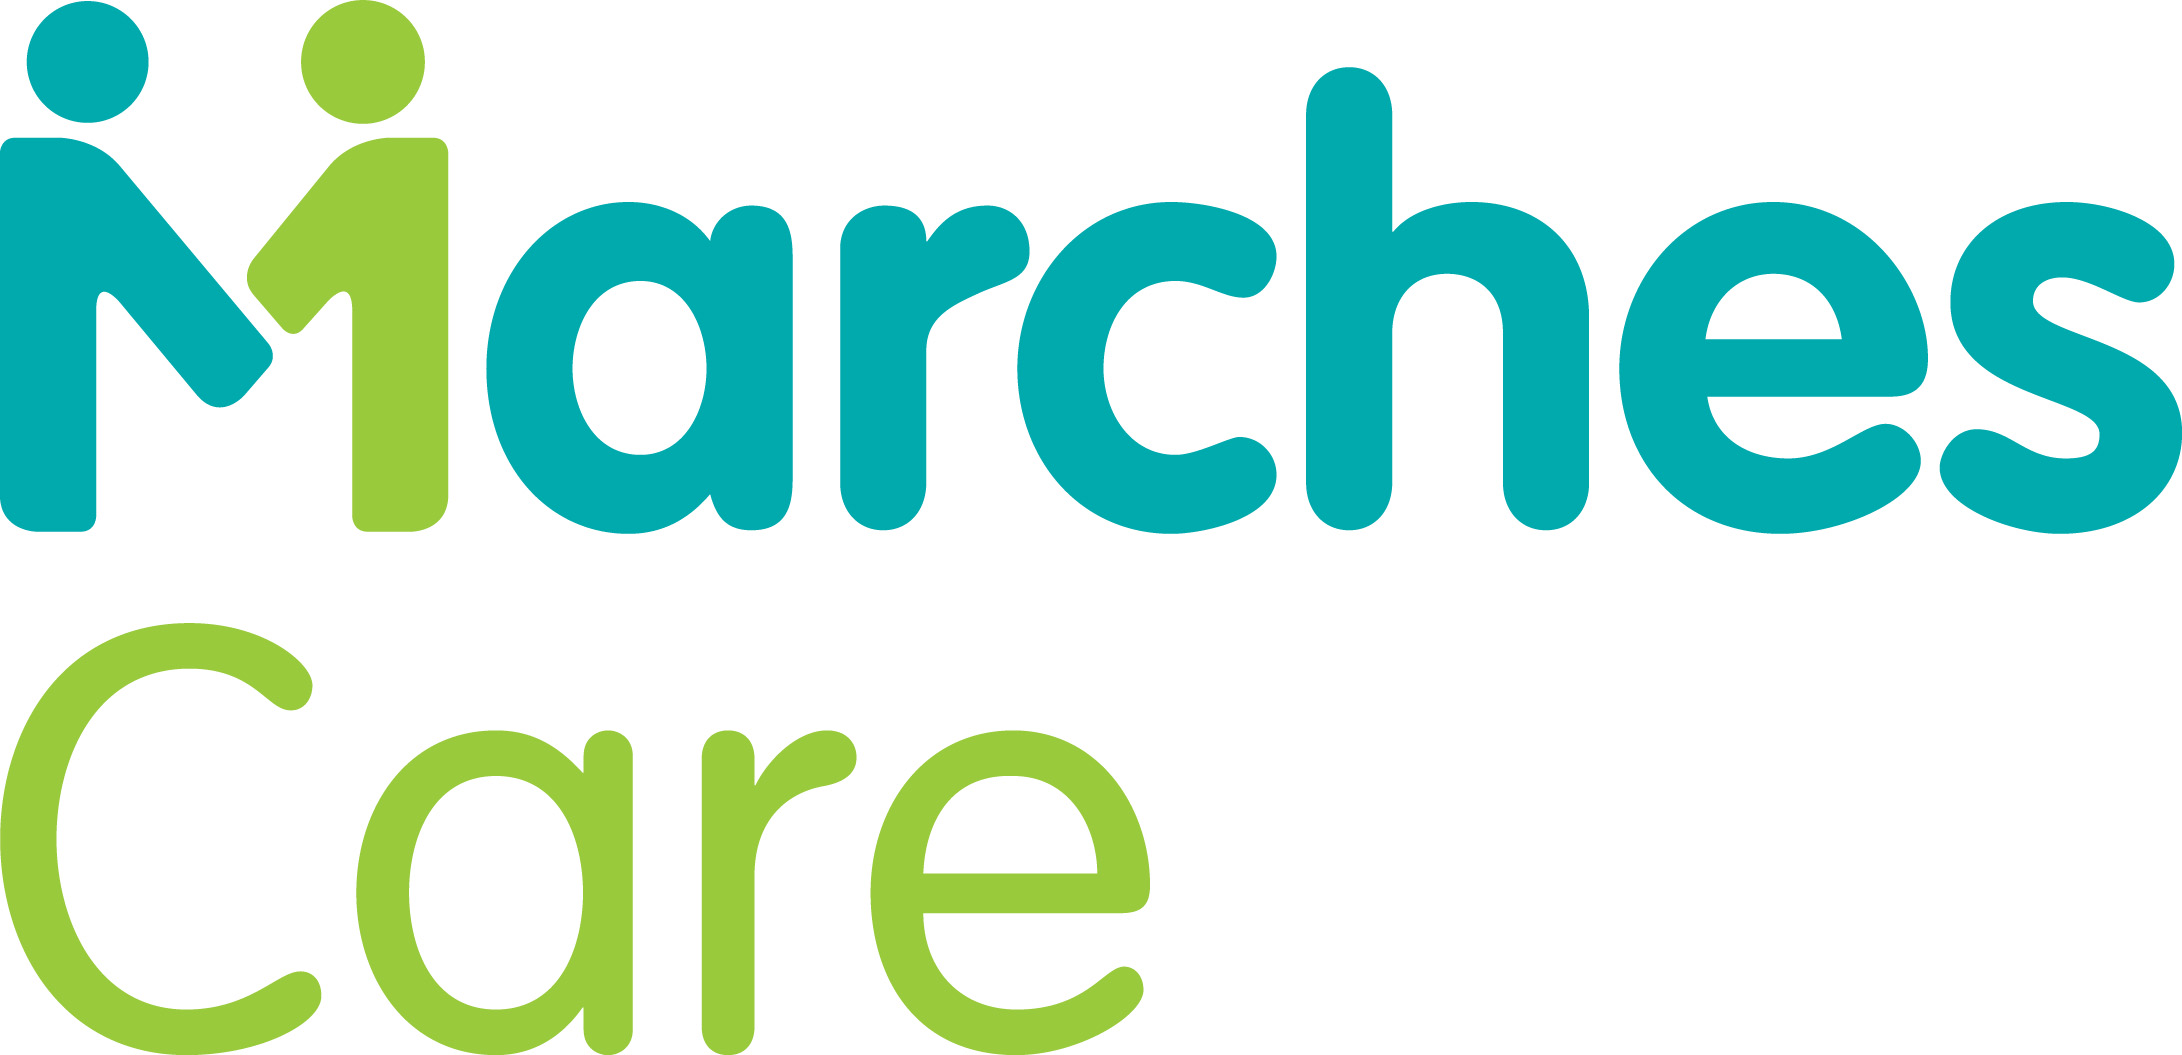 marches logo